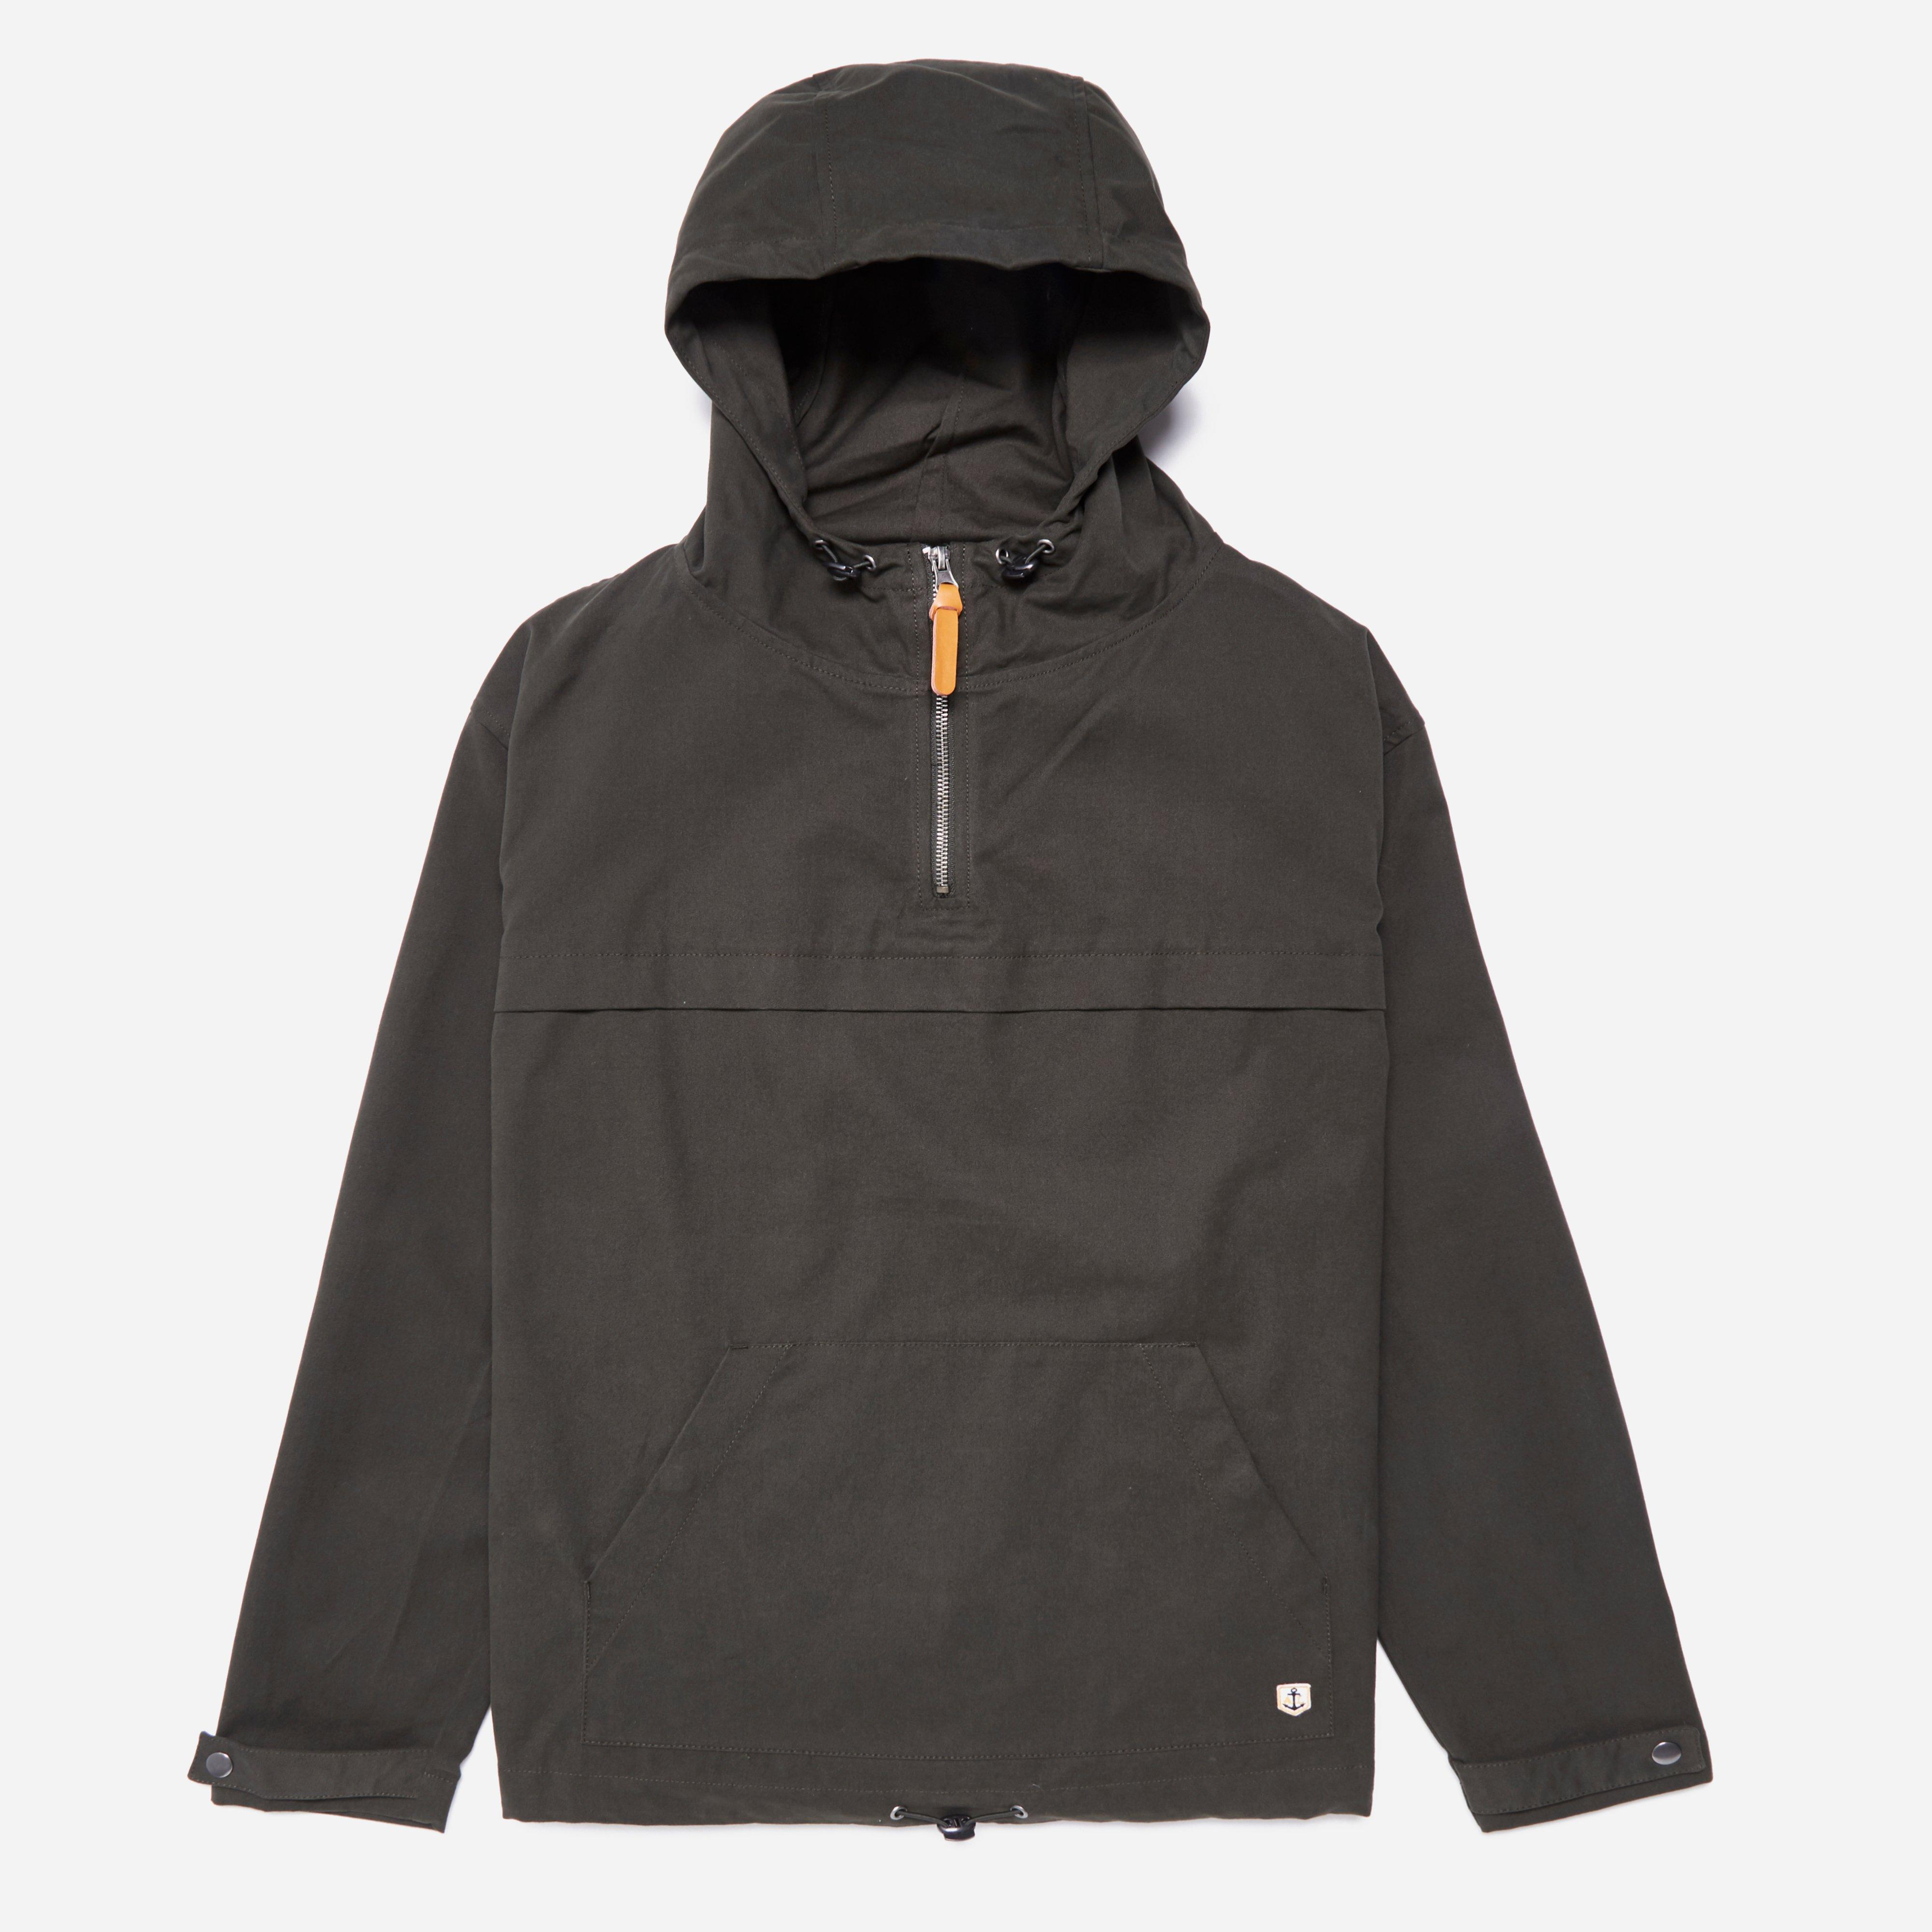 Armor Lux 74724 Heritage Smock